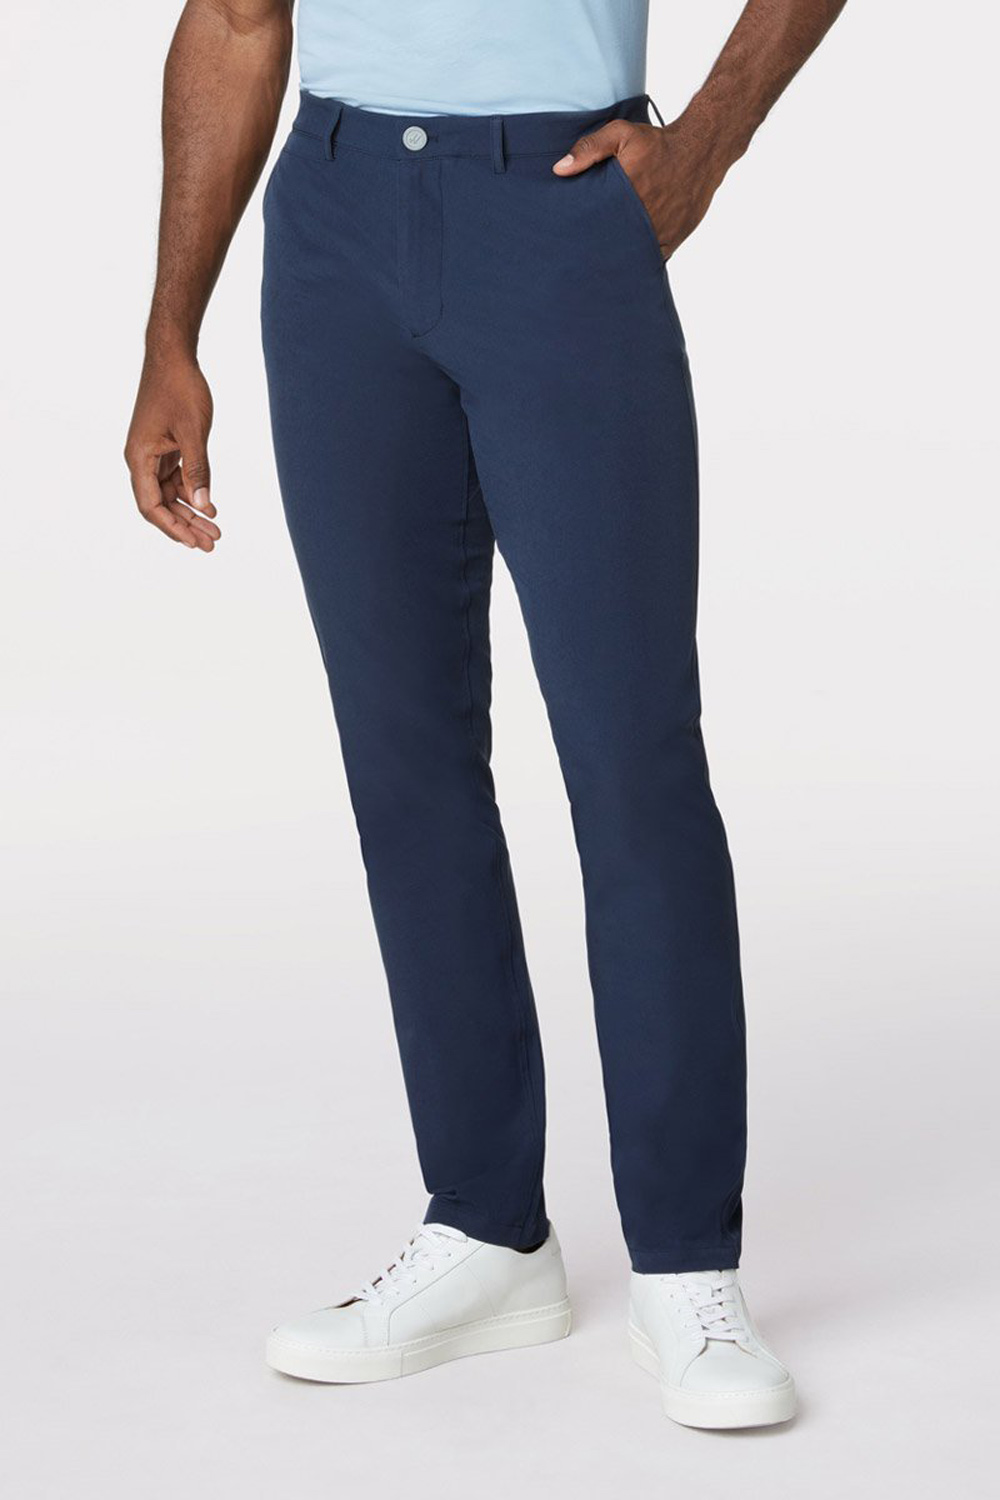 willy california nicer pants athleisure